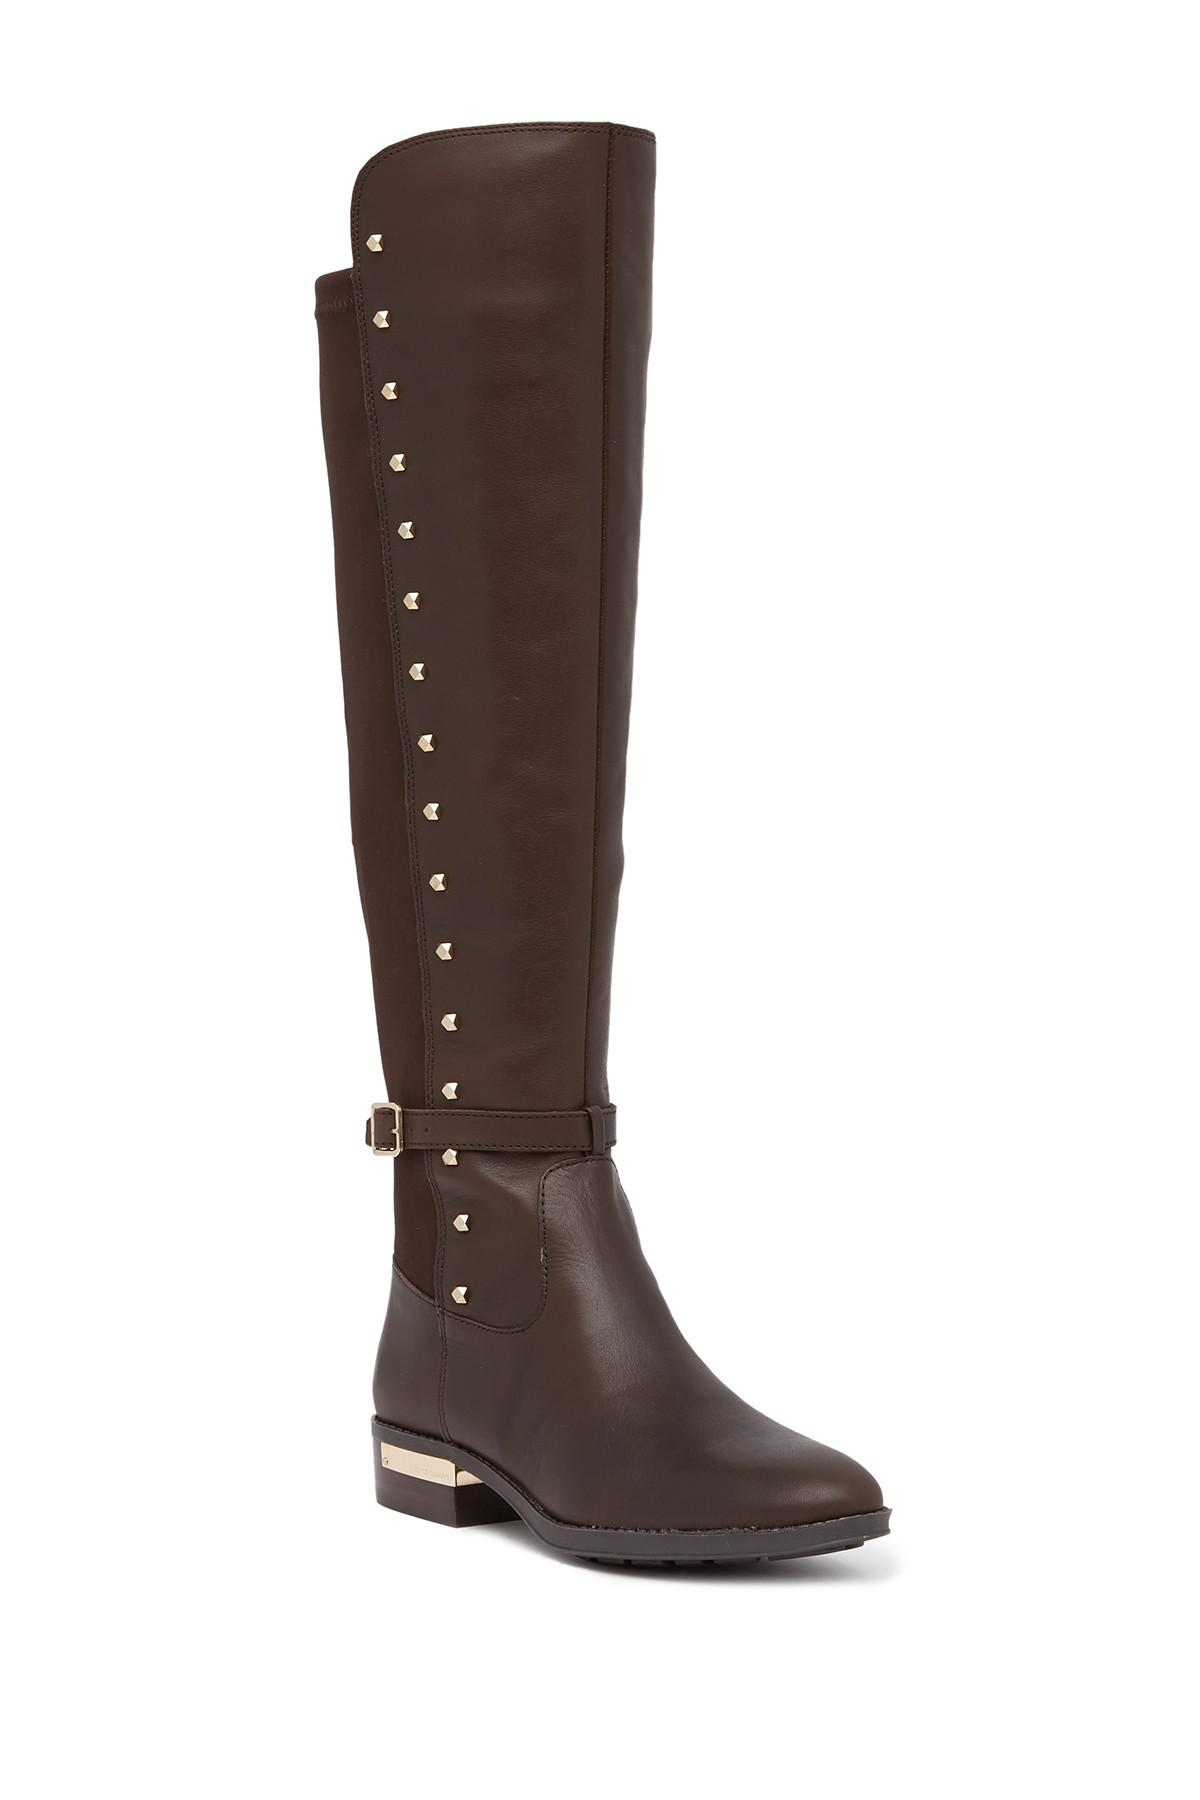 e368dba5bd6 Lyst - Vince Camuto Pelda Riding Boot in Brown